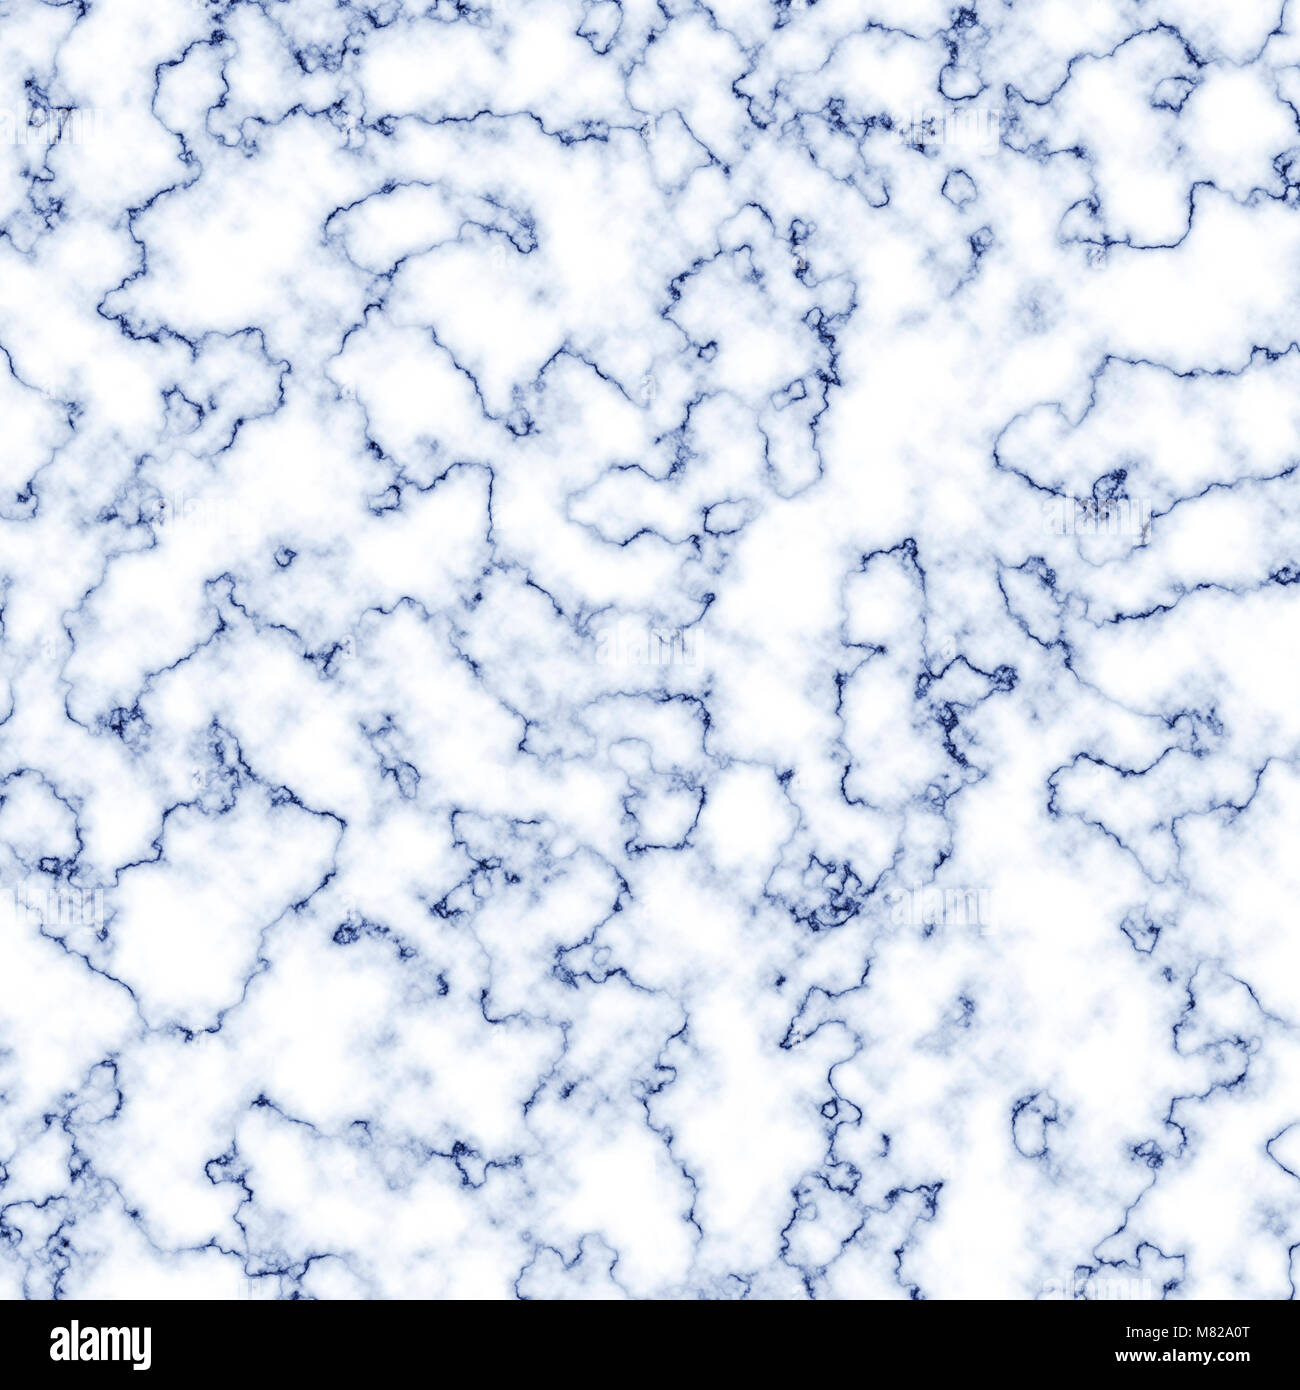 White Blue Marble Texture Background For Interiors Design Stone Wall Stock Photo Alamy